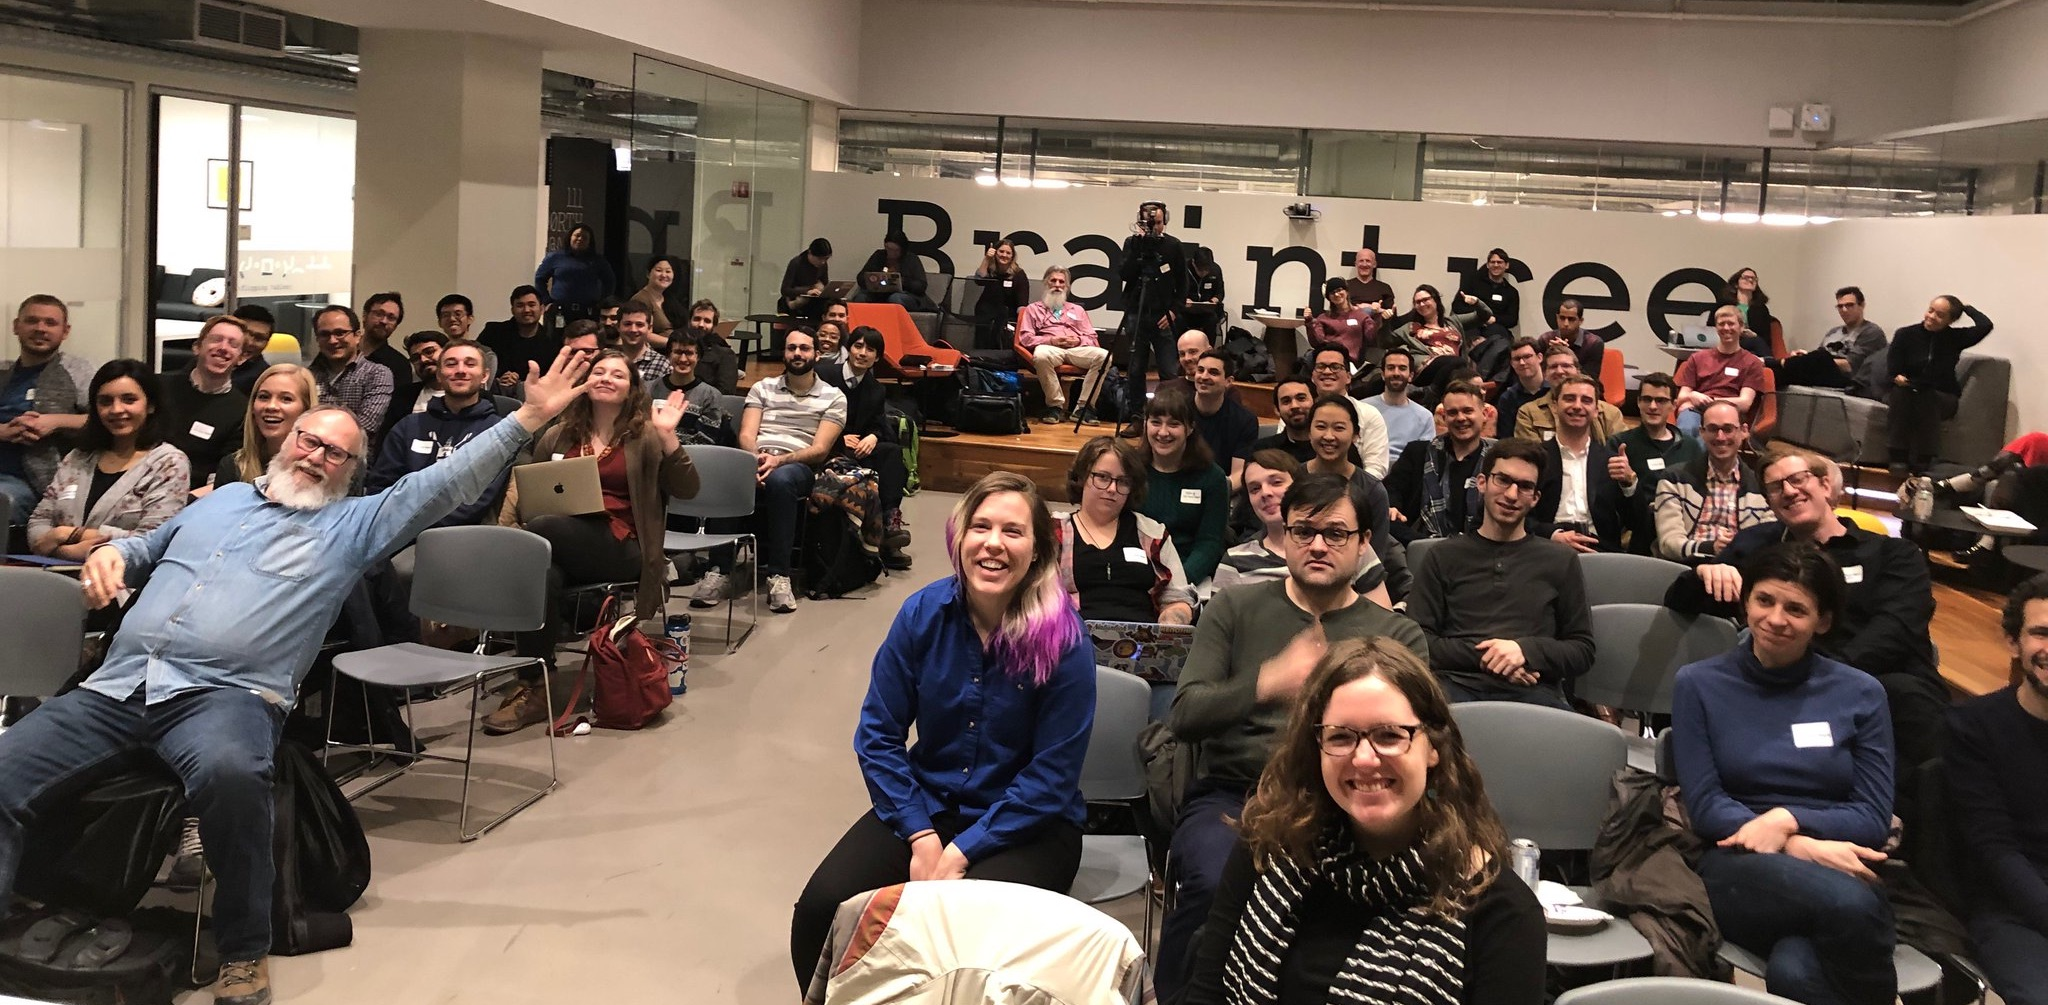 Become one of these smiling people. Be a Chi Hack Night Member!